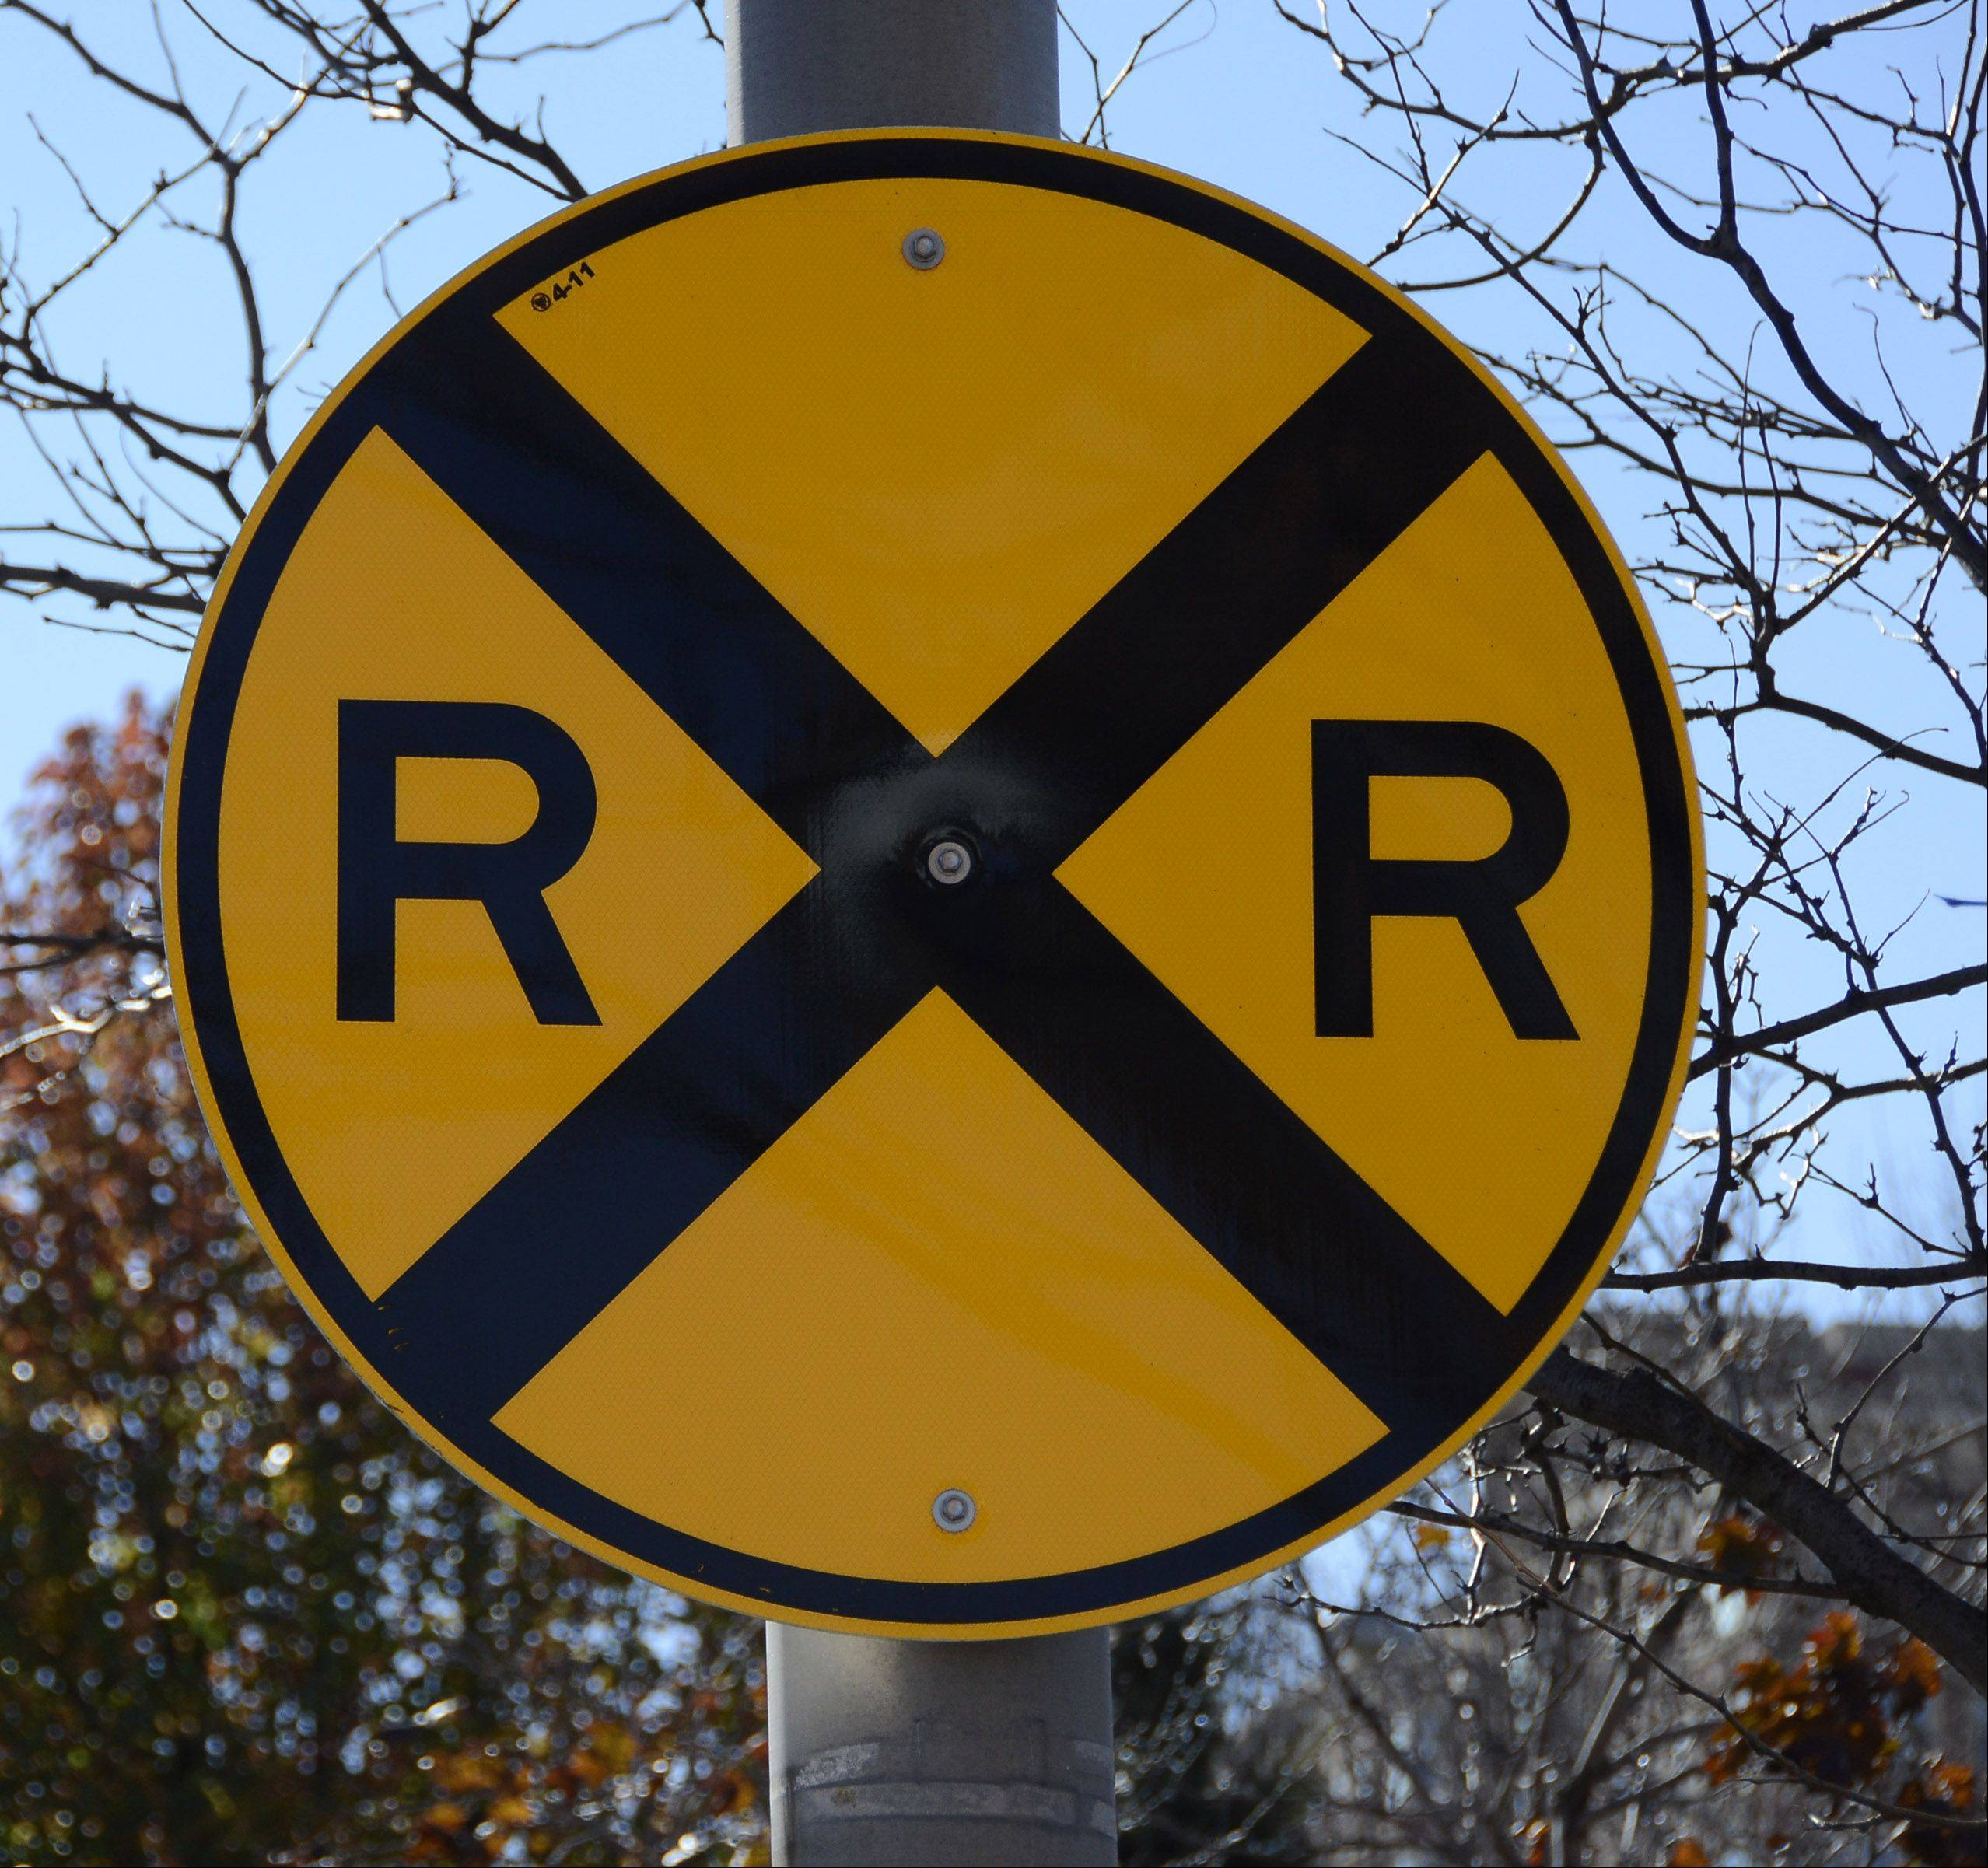 Know your signs. This one indicates a railroad crossing.